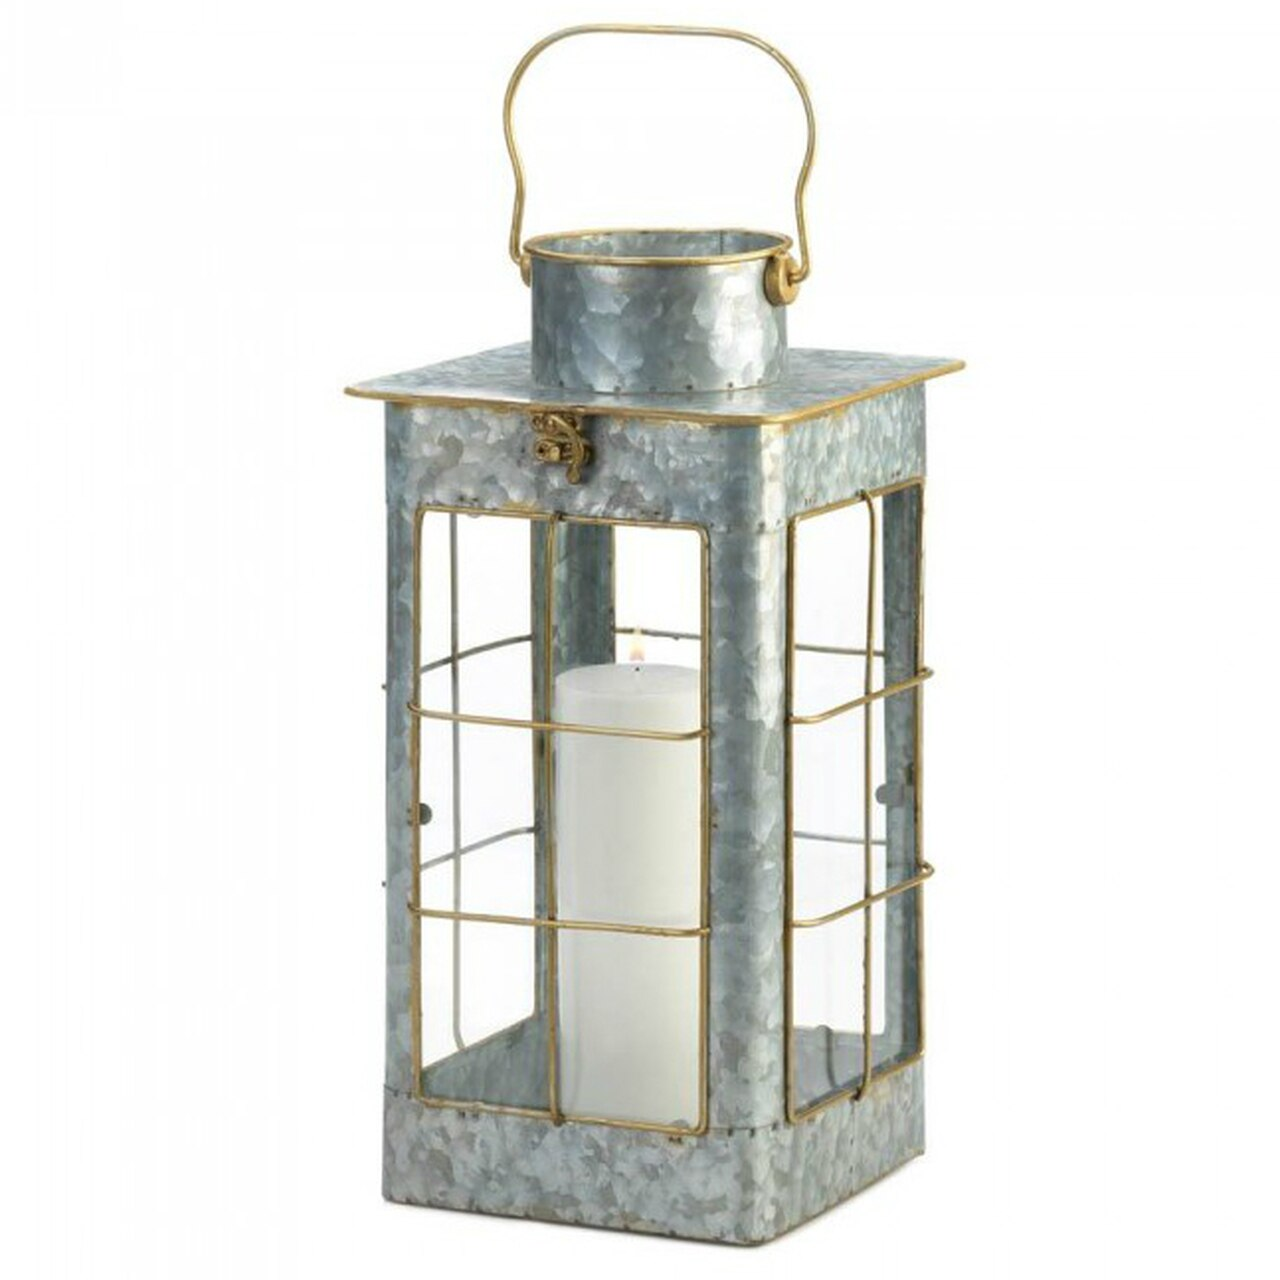 Rustic Galvanized Metal 17 Candle Lantern Farmhouse Style Home Decor Decoration Ebay